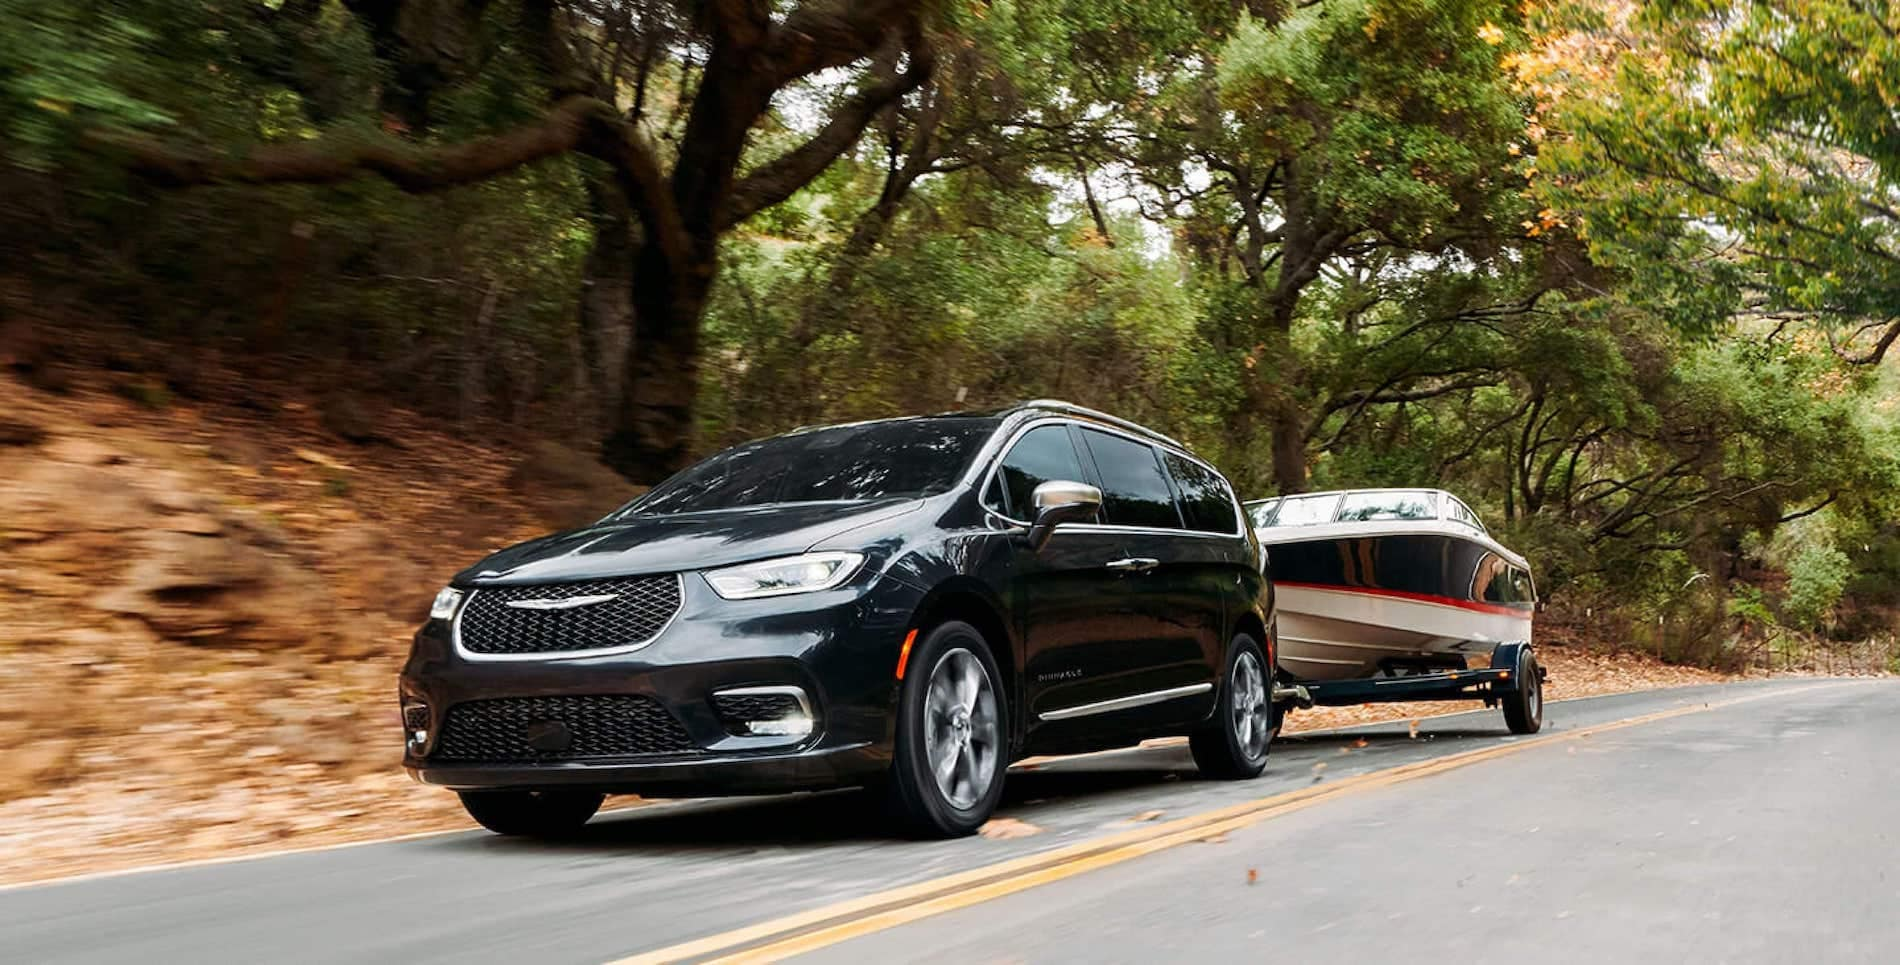 2021 Chrysler Pacifica Performance Engine